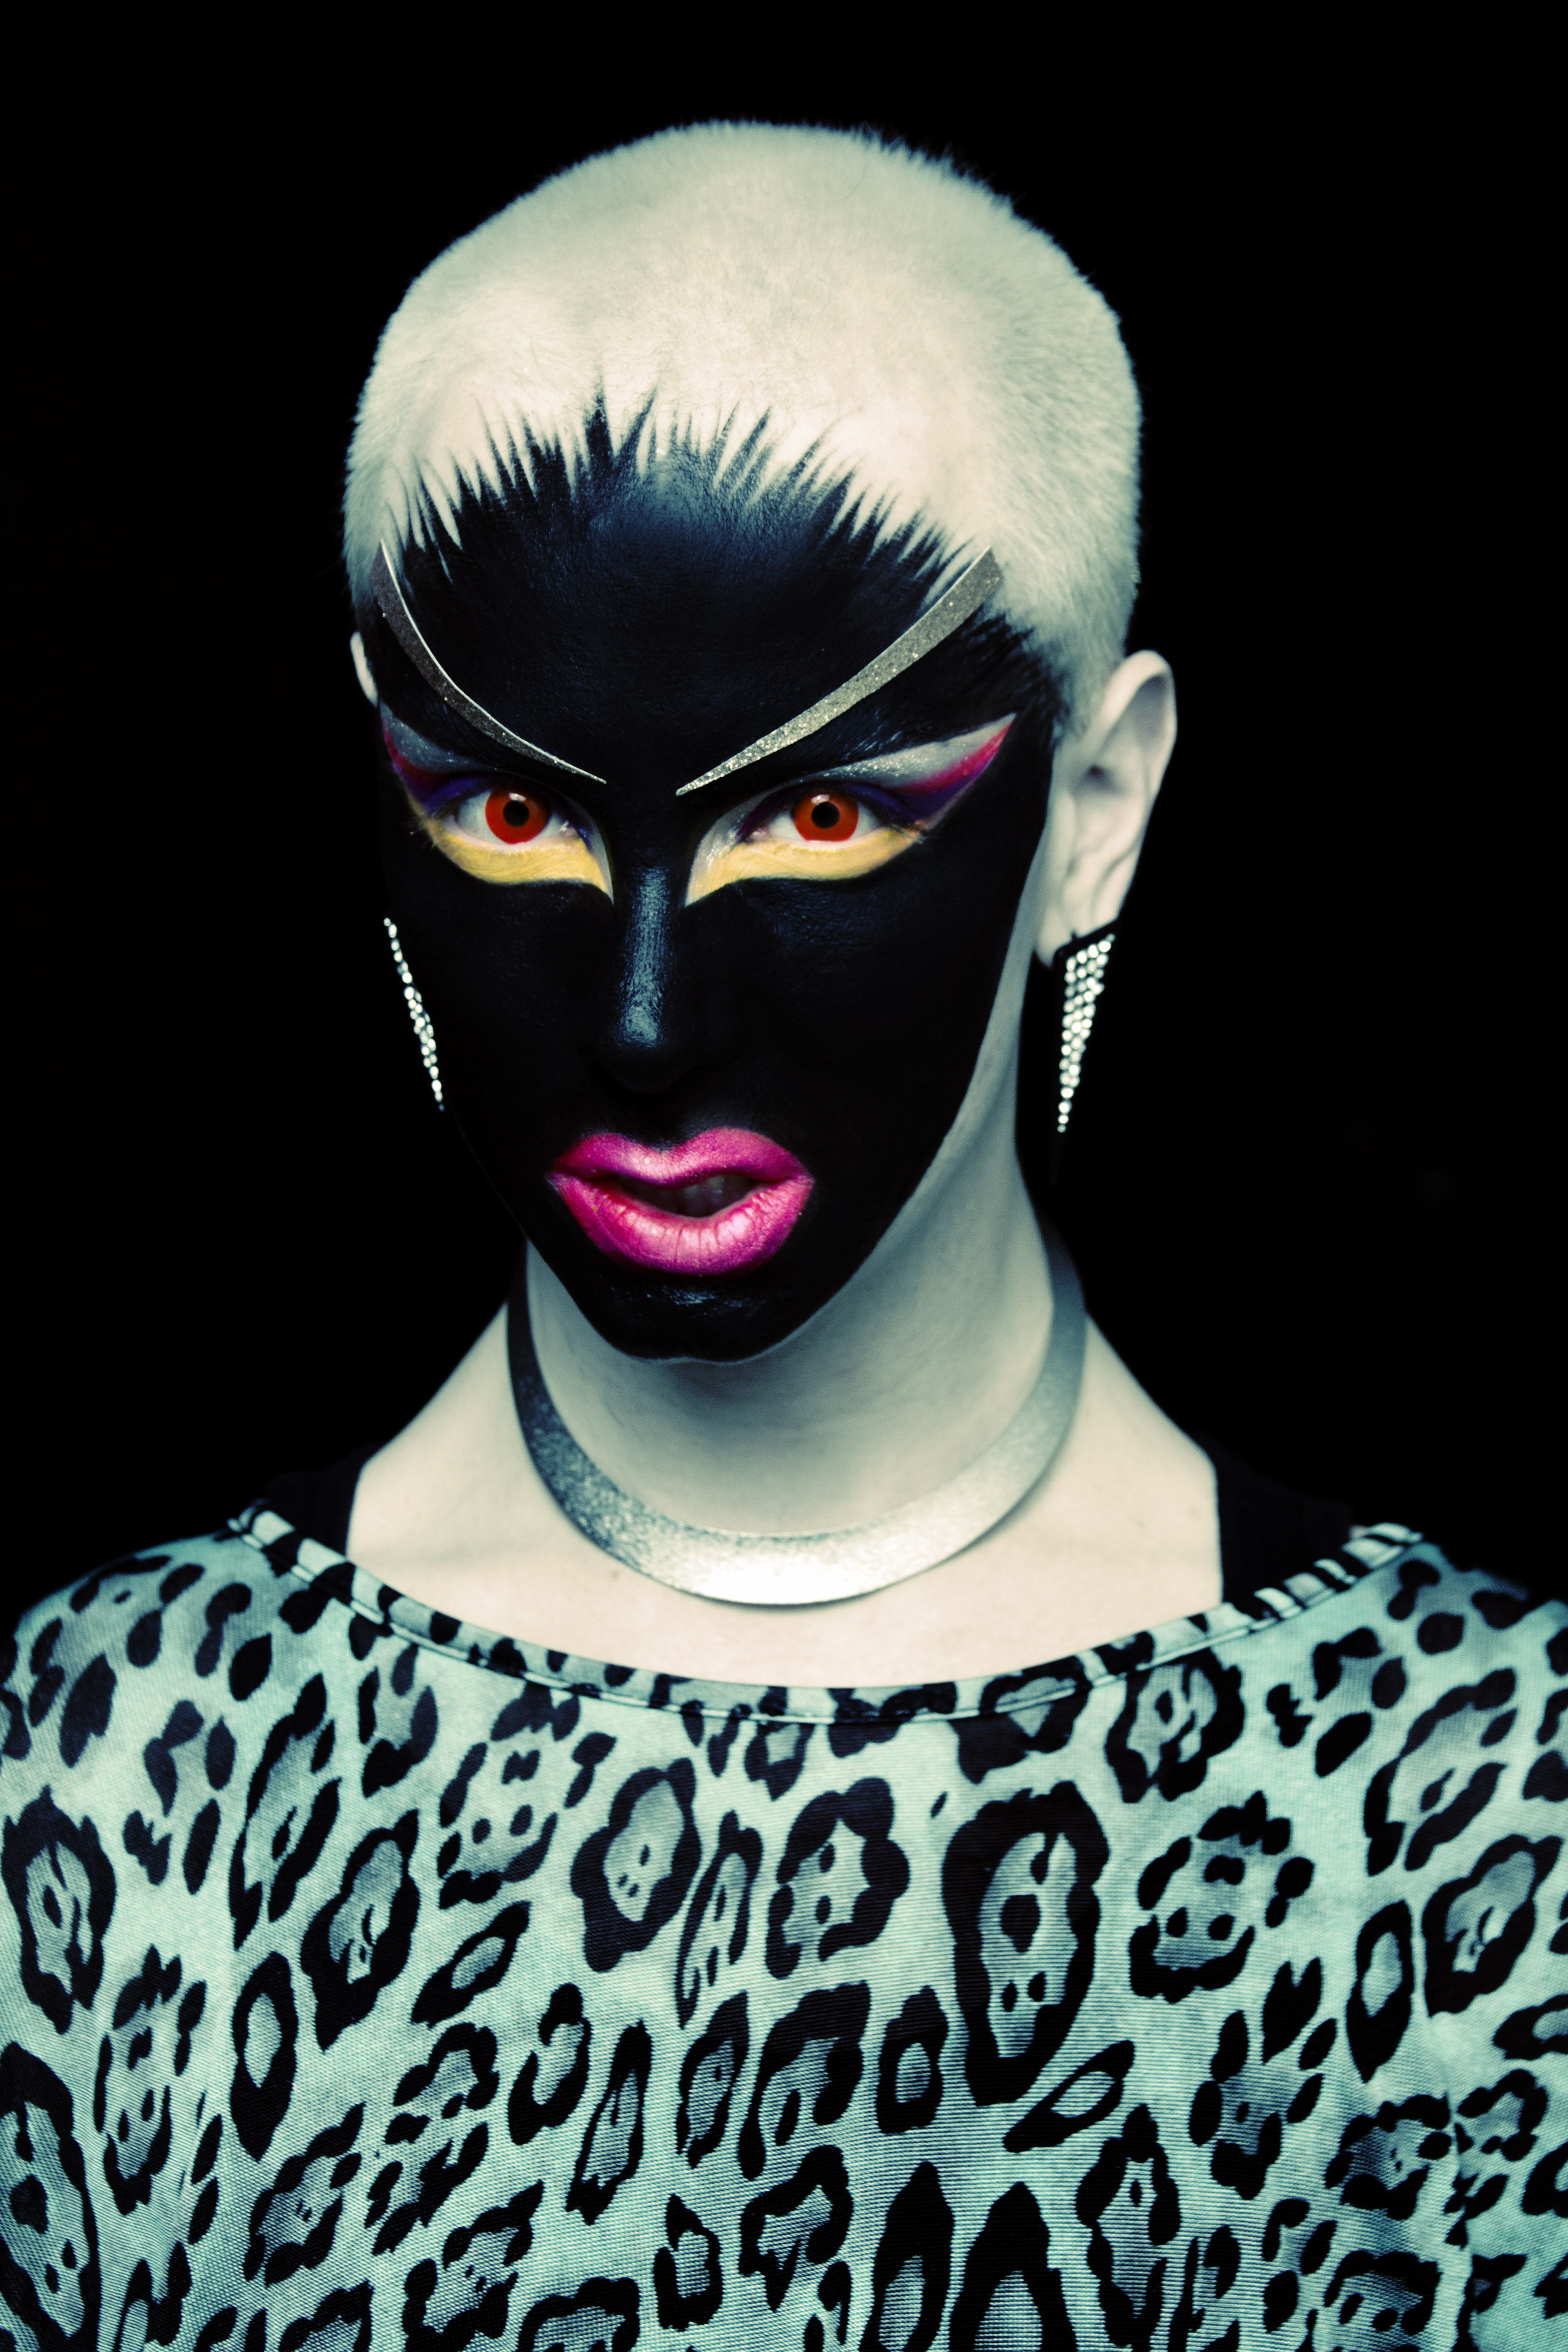 Unknown artist. This makeup is very bird like, cool AND